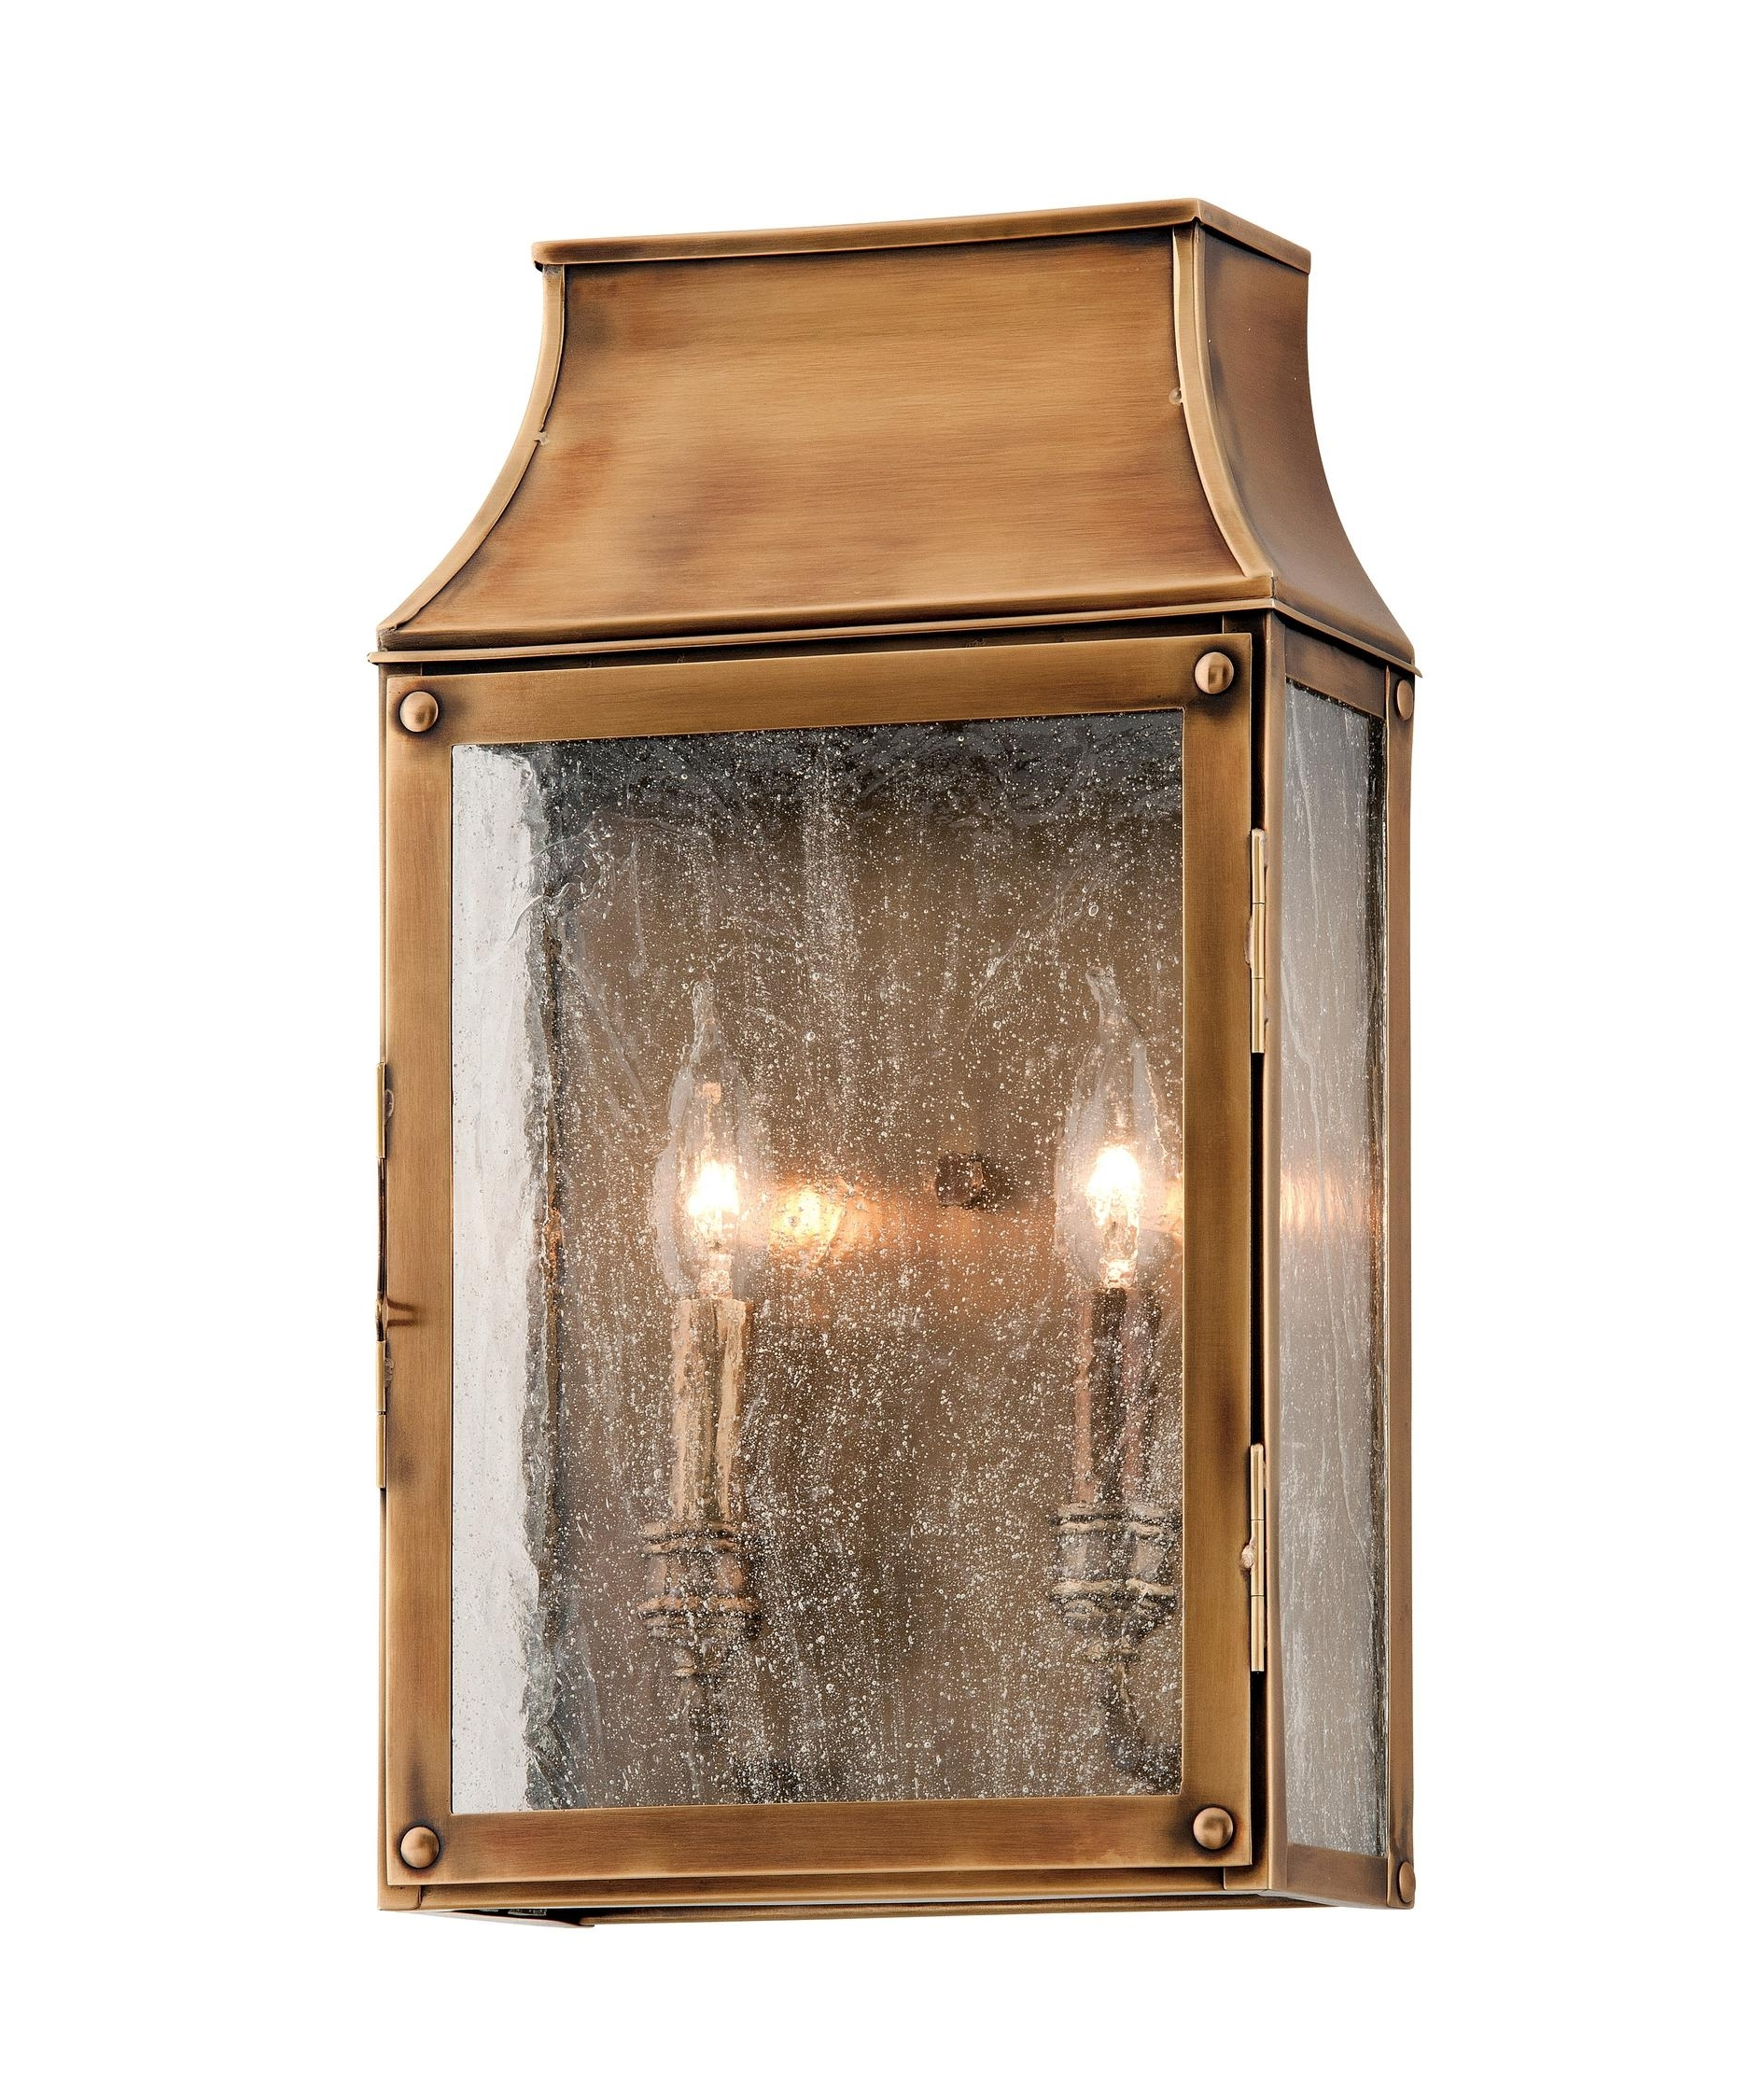 Troy Lighting B3422 Beacon Hill 9 Inch Wide 2 Light Outdoor Wall For Best And Newest Beacon Outdoor Wall Lighting (View 7 of 20)